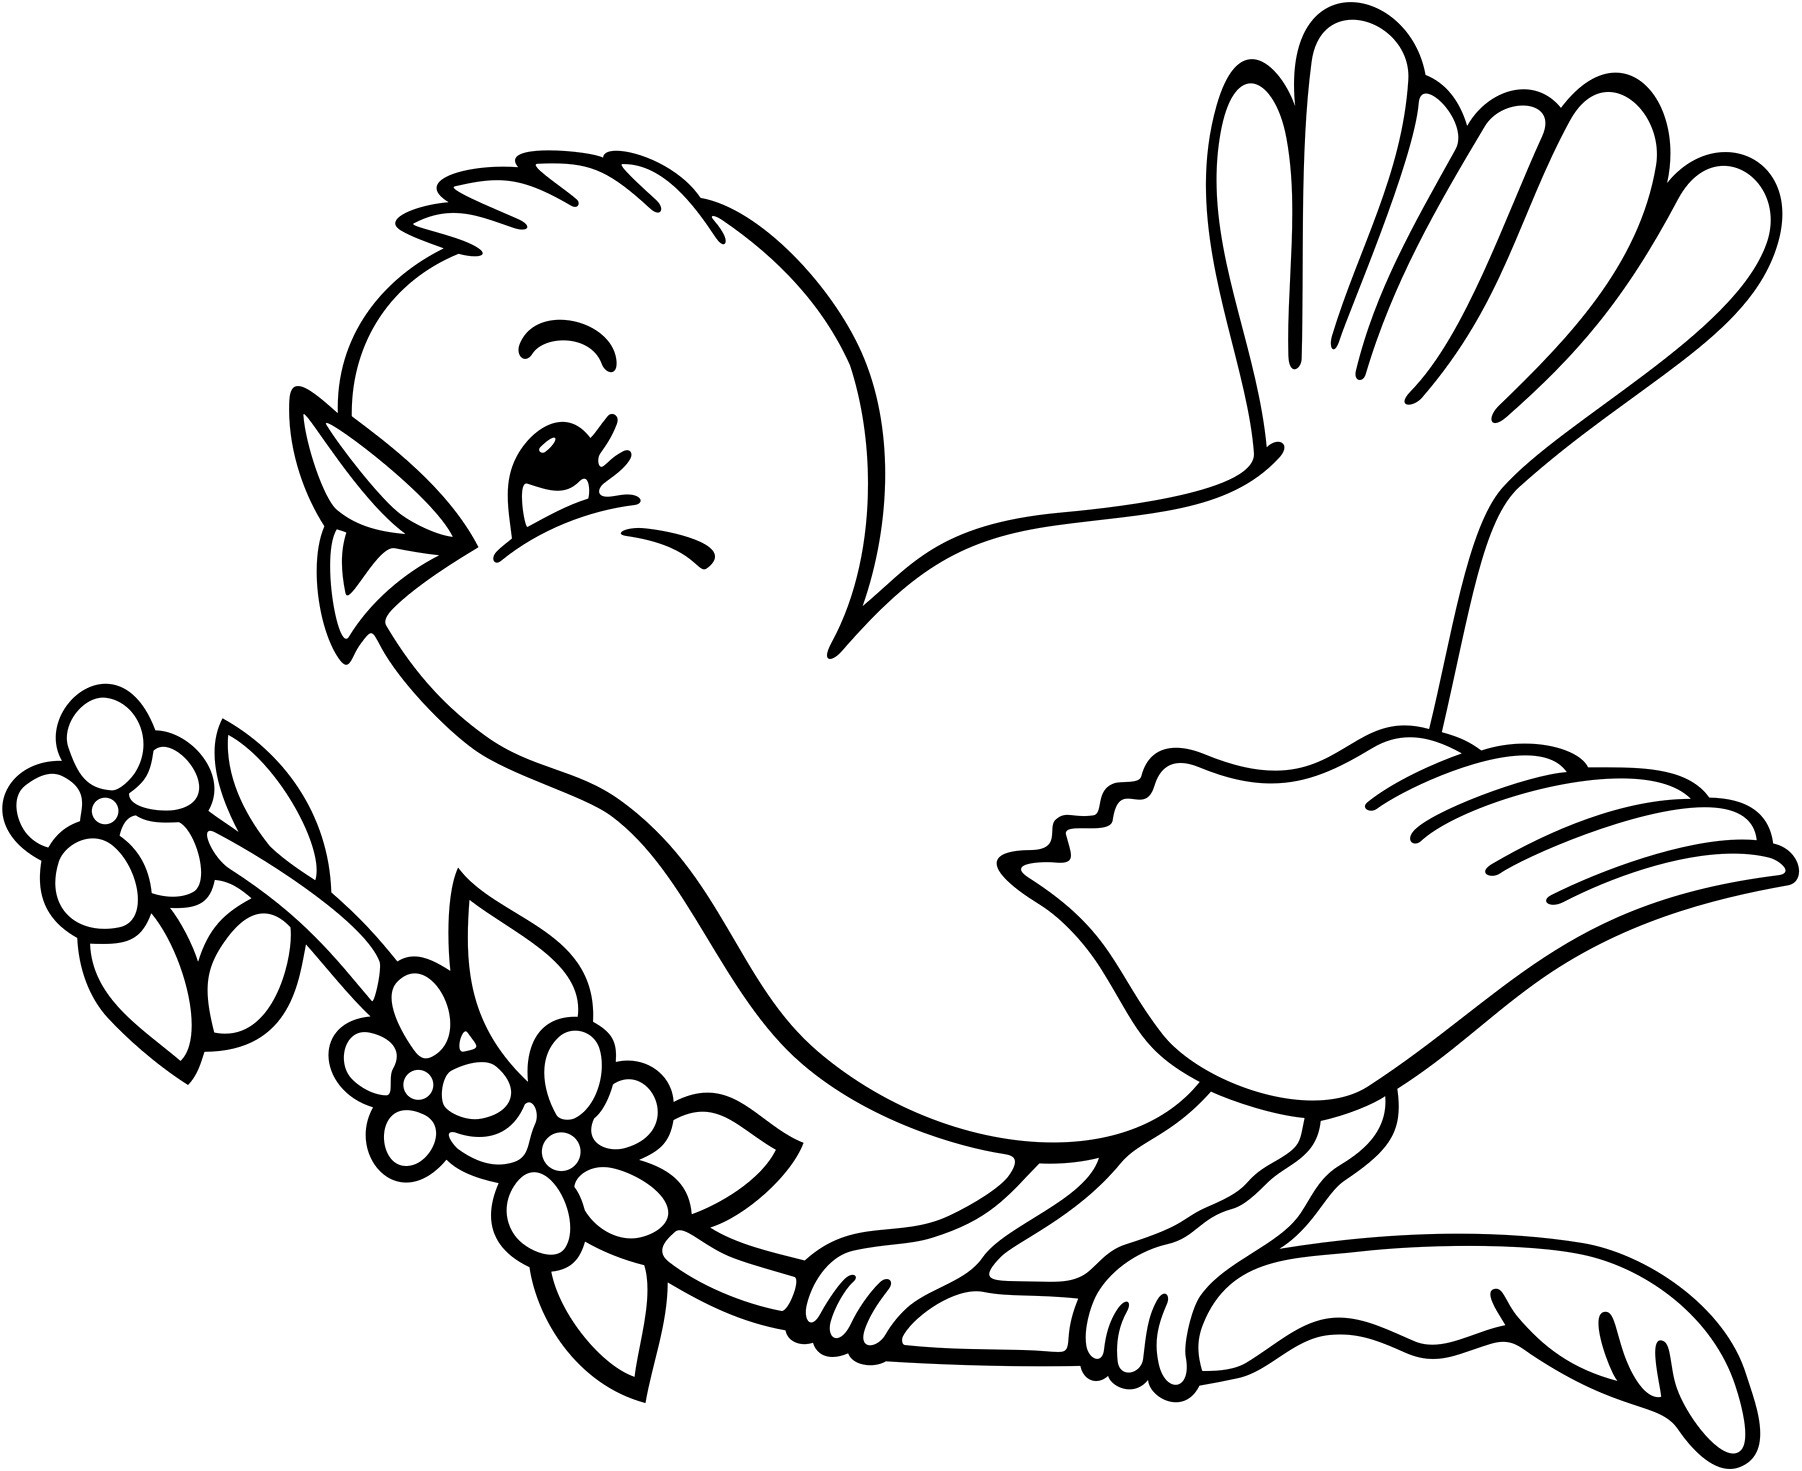 1802x1471 Bird Coloring Pages Cute Tweety For Kids Beautiful With Birds